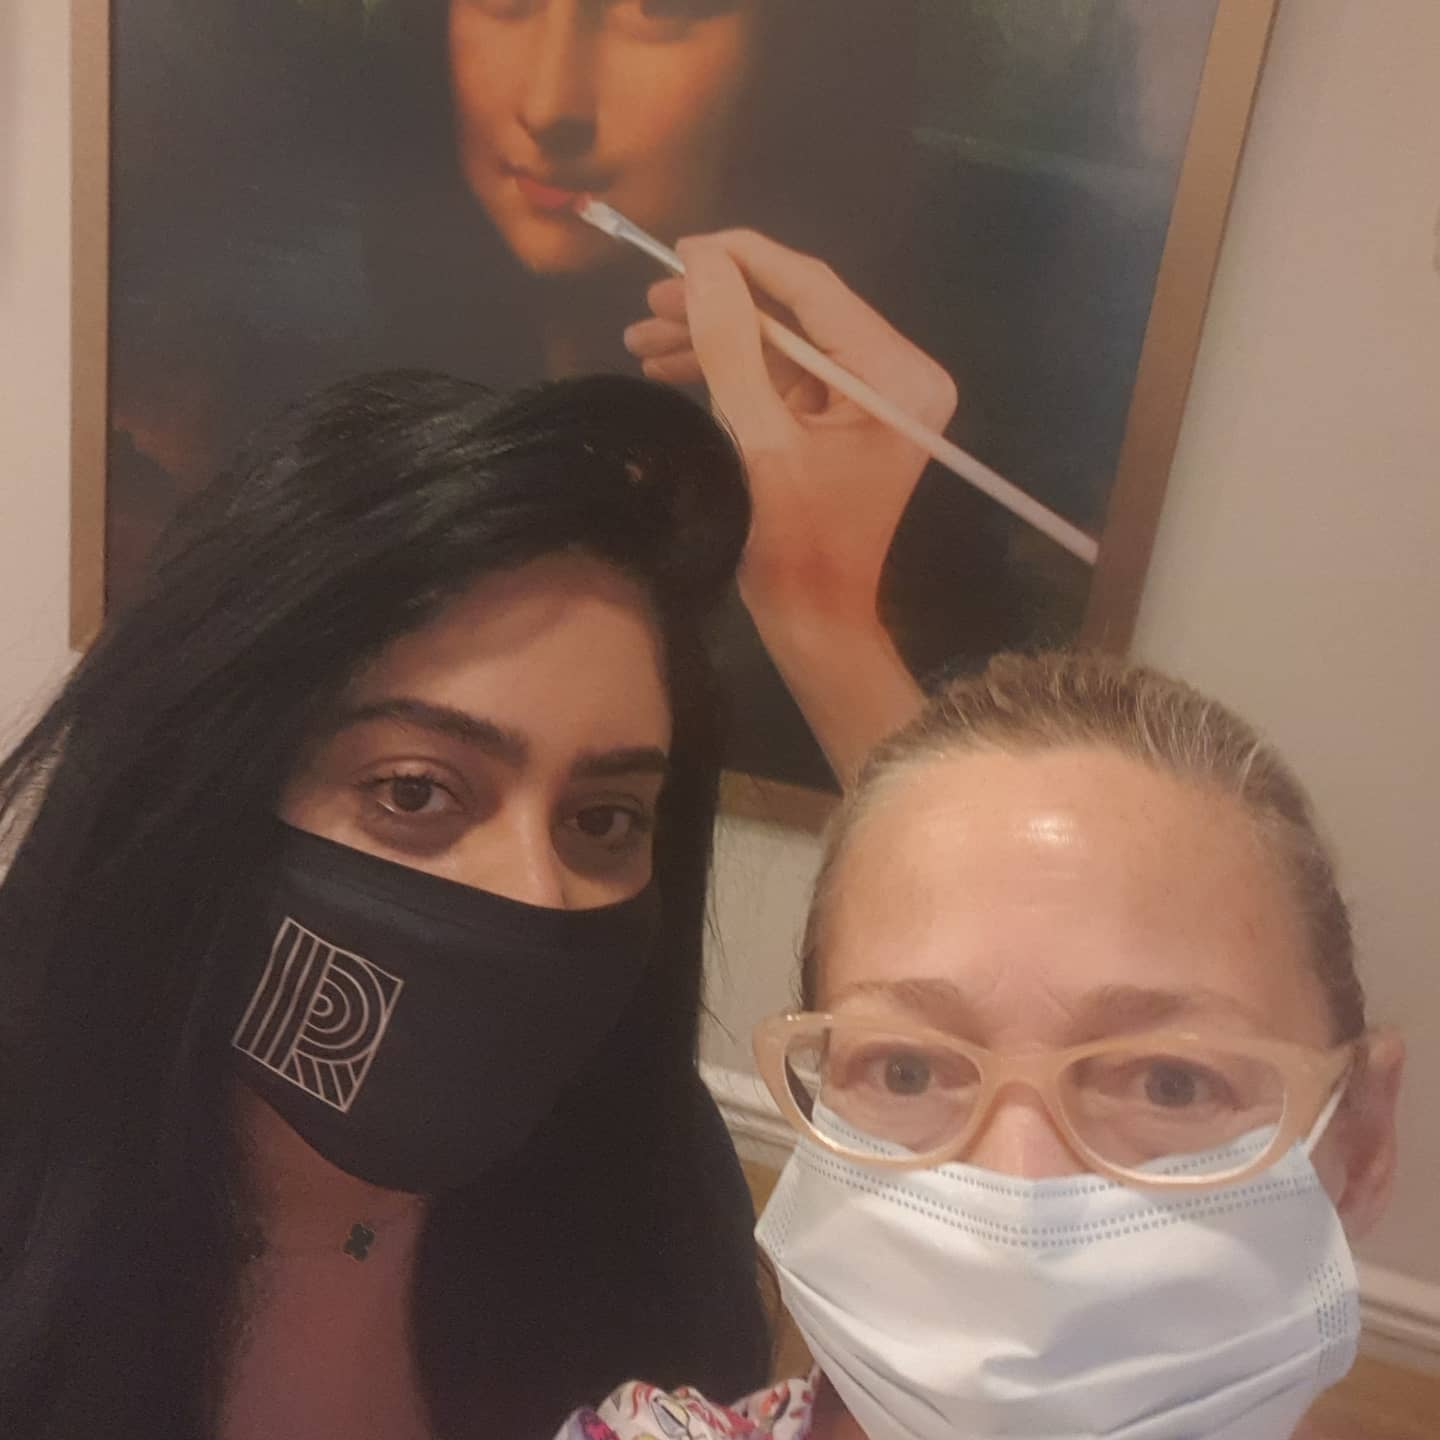 I ventured into London's West End yesterday for my first facial after 6 months.  I had been recommended to try Dr Rasha's clinic in Mayfair. . I was temperature checked on arrival, the reception staff were behind screens and wearing masks, and masks were obligatory in the waiting areas and for therapists.  . The clinic was extremely professional, clean and somewhere any new anxious client would feel completely  confident and comfortable, in these post-lockdown Covid times,  to go to be treated.  . Here I am in pic 1, all masked up, with the lovely owner- Dr Rasha aesthetics physician and clinic director,  and in  pic 2 here I am after my facial with my 65-year old happy shiny face that loved the professional tlc and pampering it had just received.  . I will be revisiting again very soon. Thank you for my lovely afternoon.  . (Btw, this isnt an ad, I only write and post about places and products that I believe in and make a difference to my life and may inspire others).  . . . @drrashaclinic